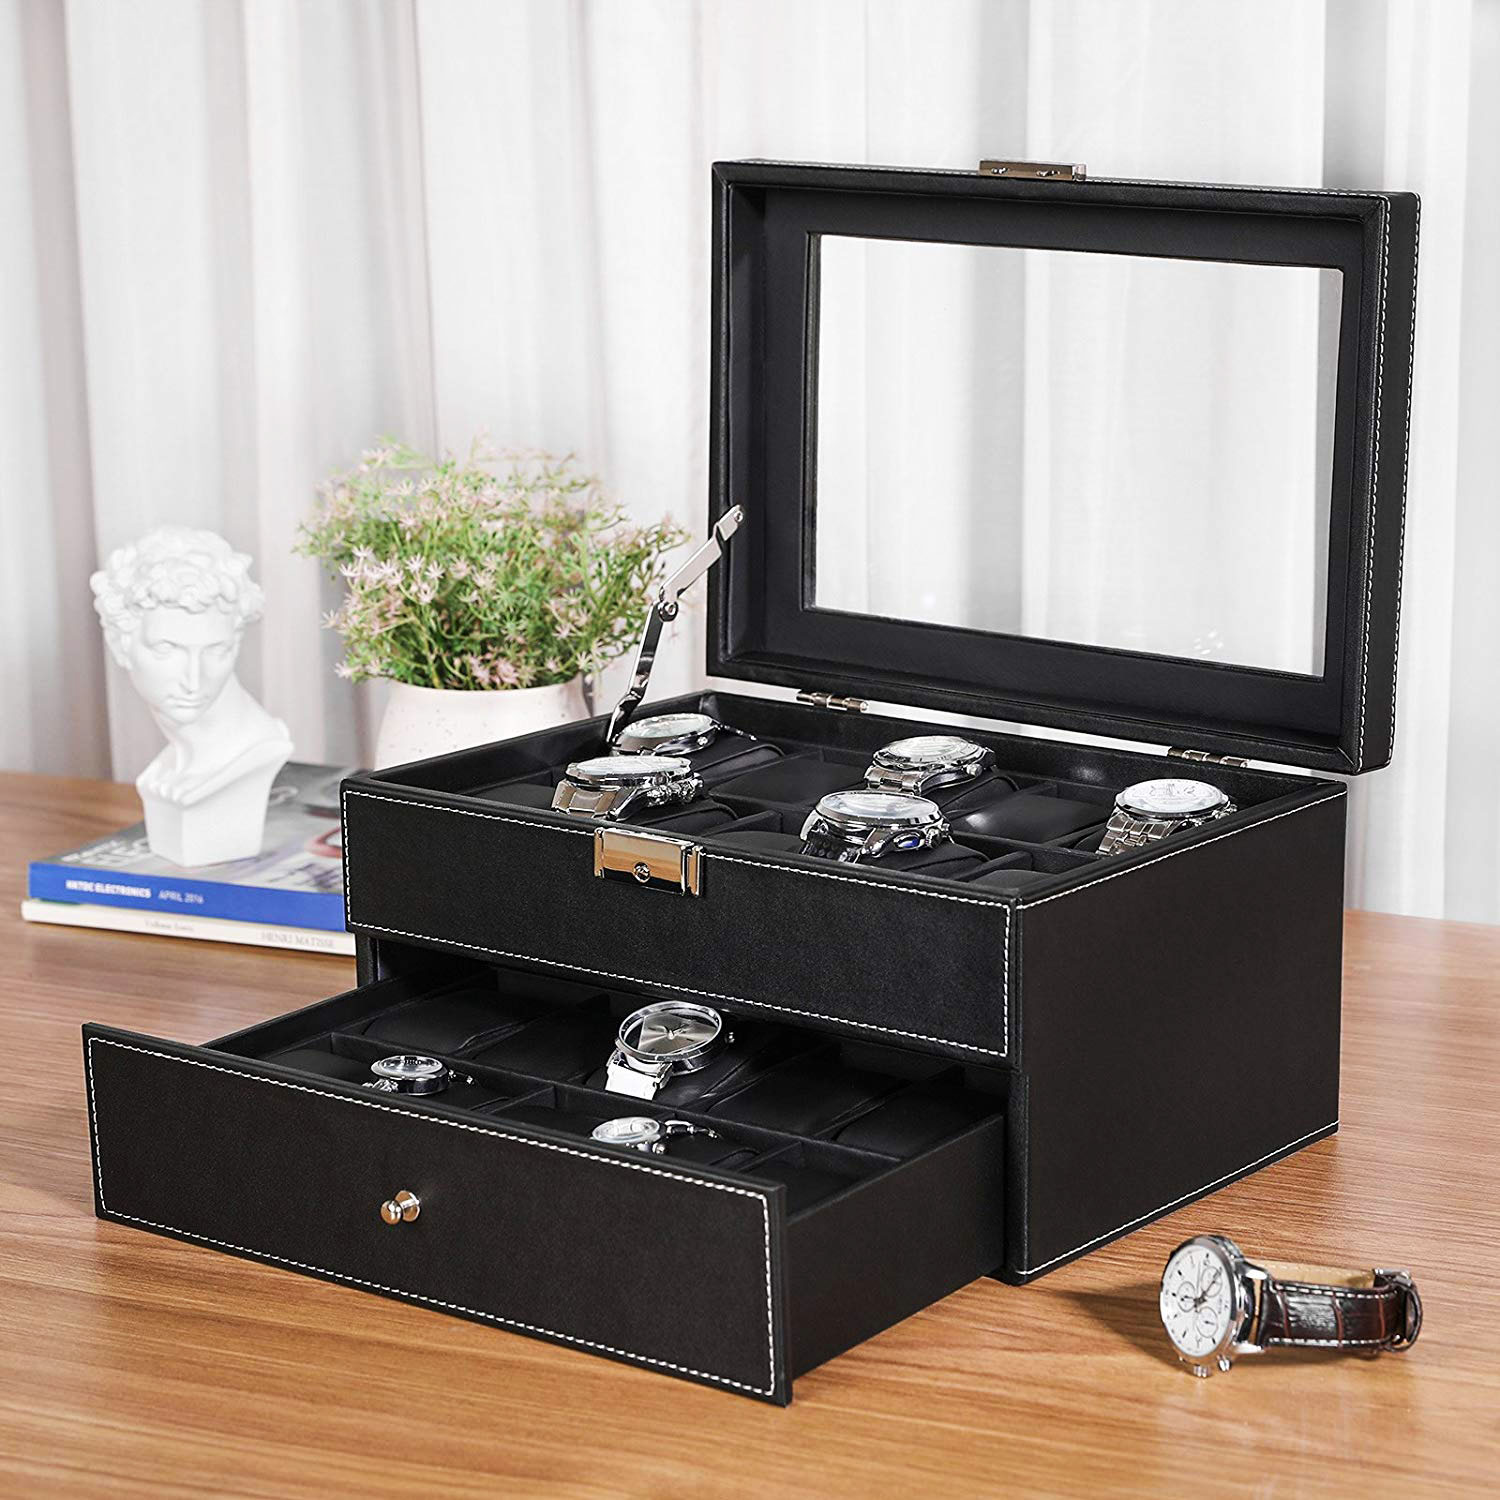 Watches, Parts & Accessories Reliable Faux Leather Watch Case Storage Display Box Organiser Jewelery Glass Top Boxes, Cases & Watch Winders